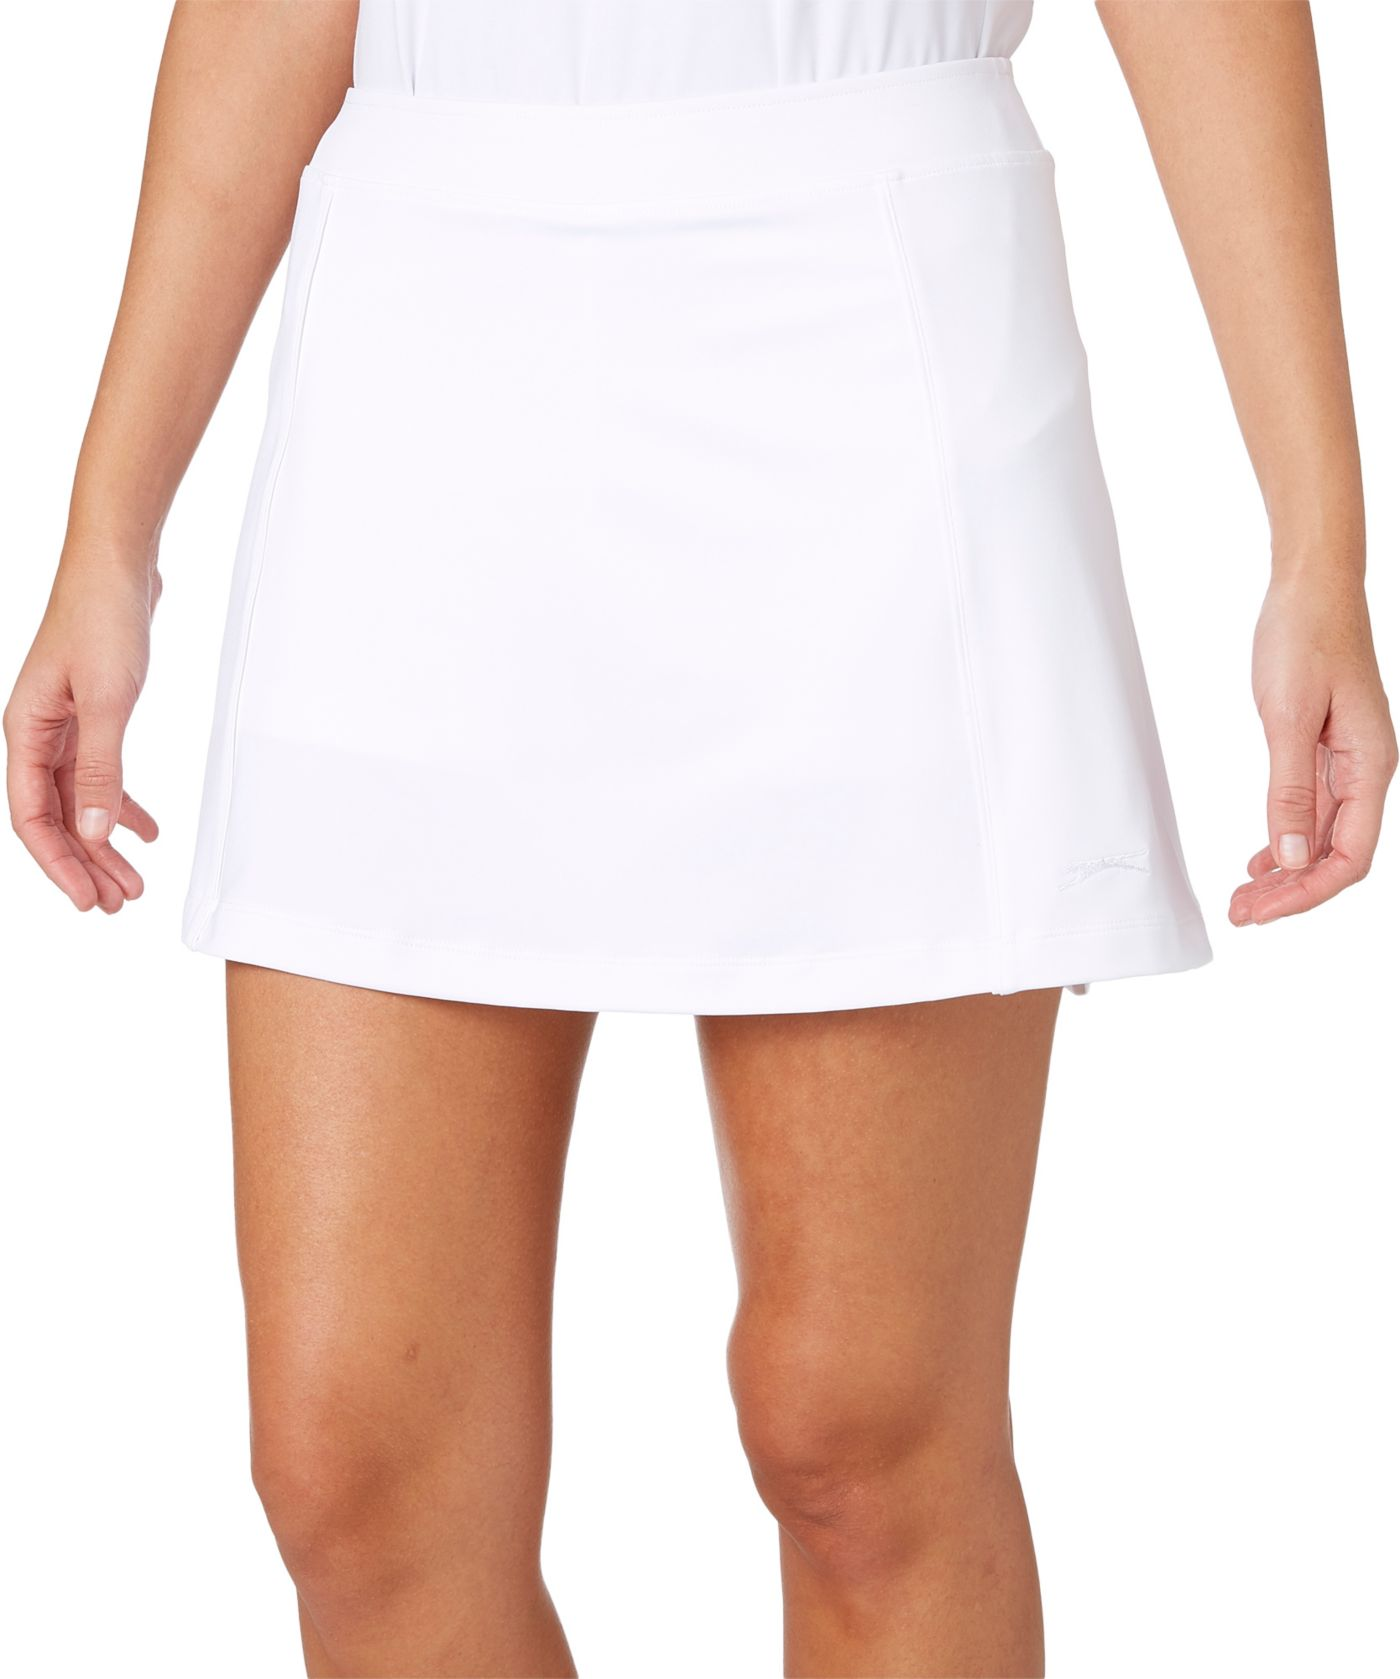 Slazenger Women's Tech Pleated Golf Skort